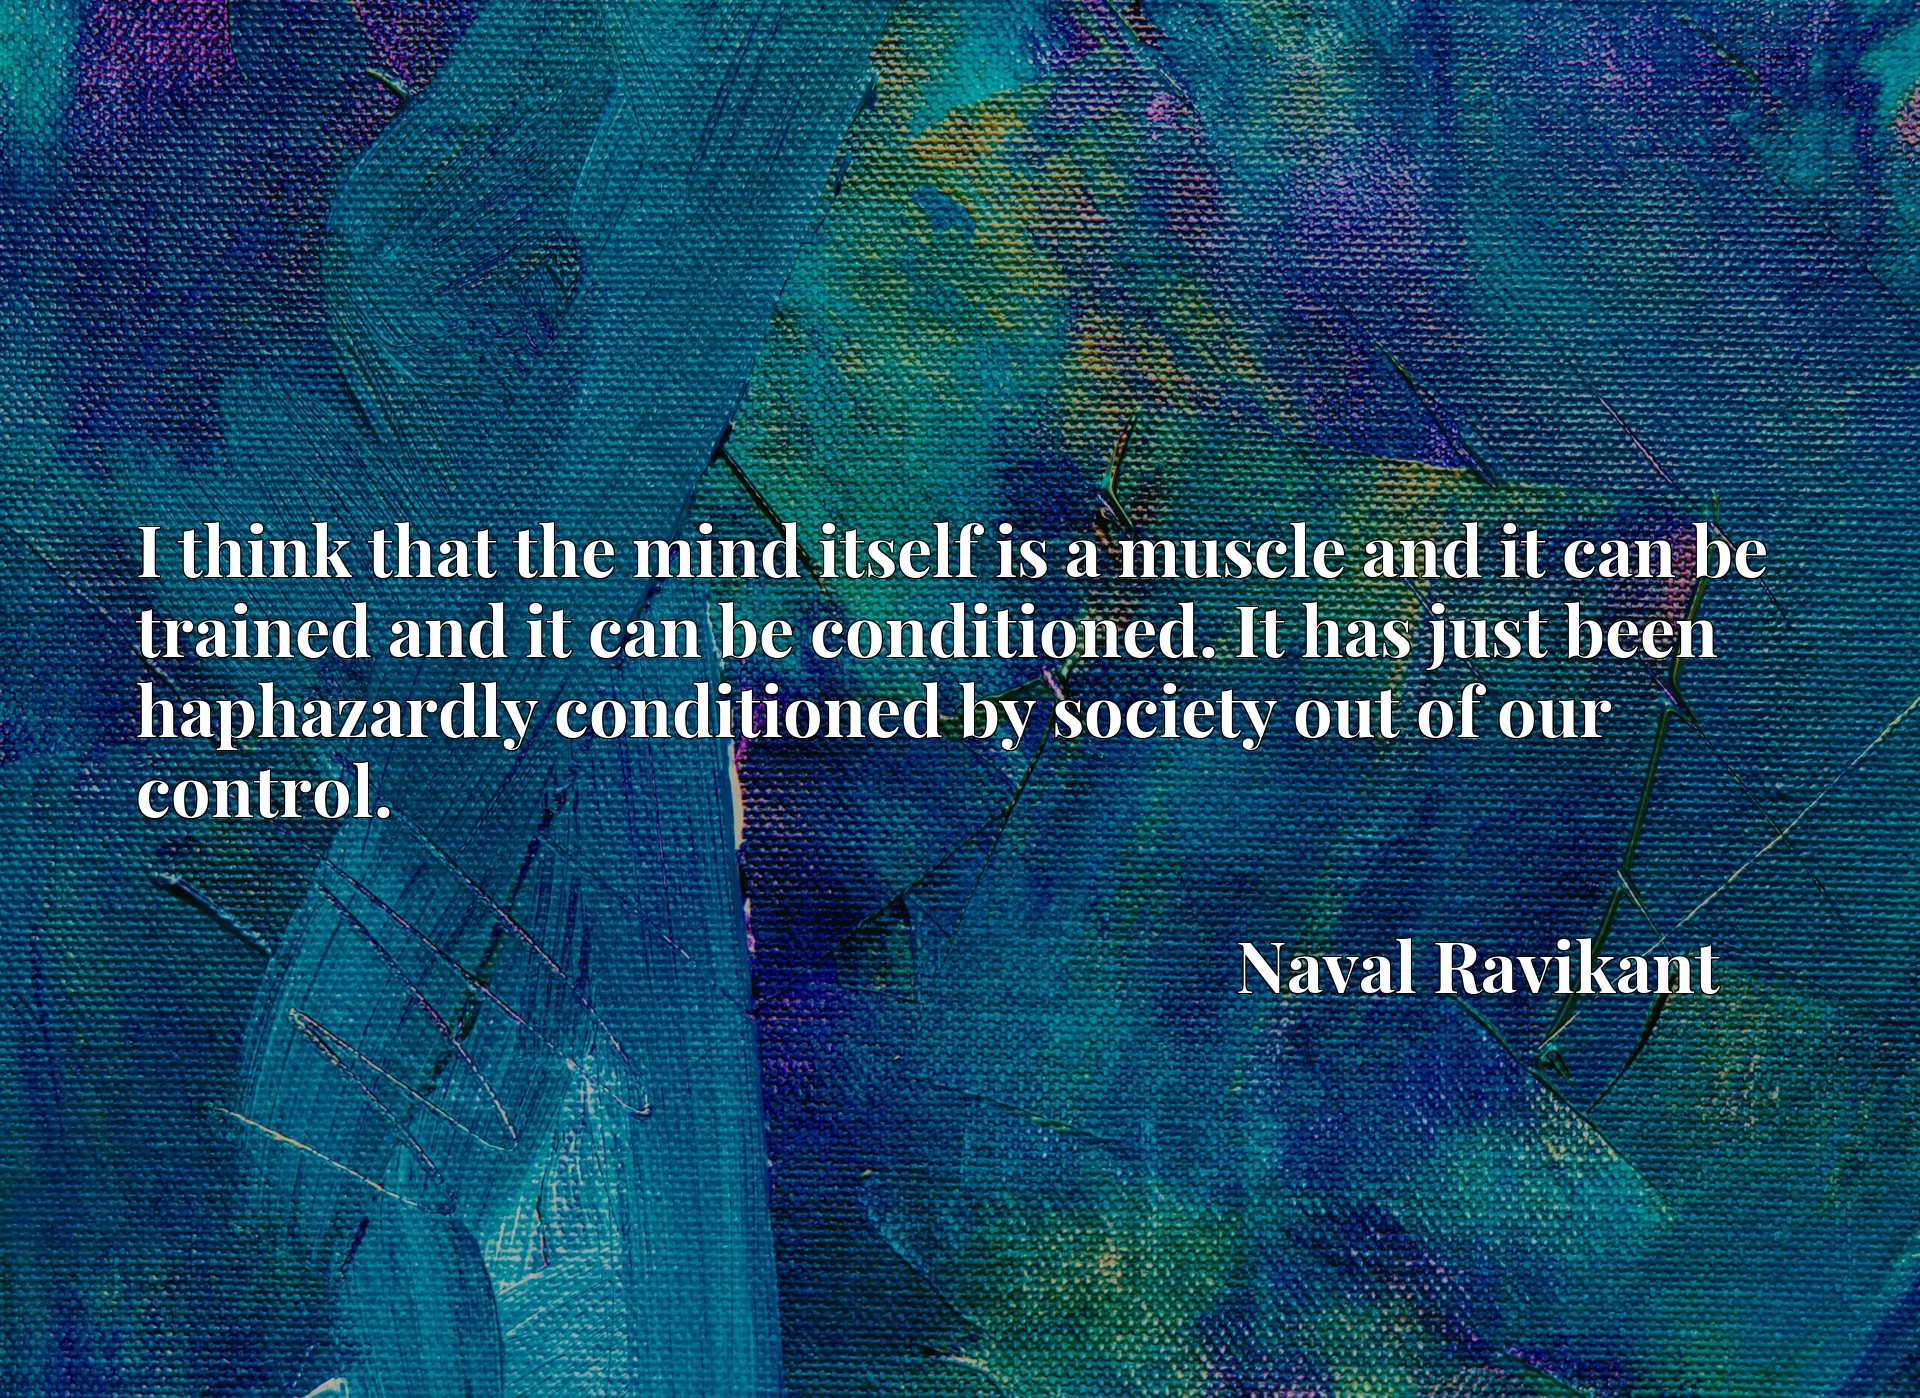 I think that the mind itself is a muscle and it can be trained and it can be conditioned. It has just been haphazardly conditioned by society out of our control.